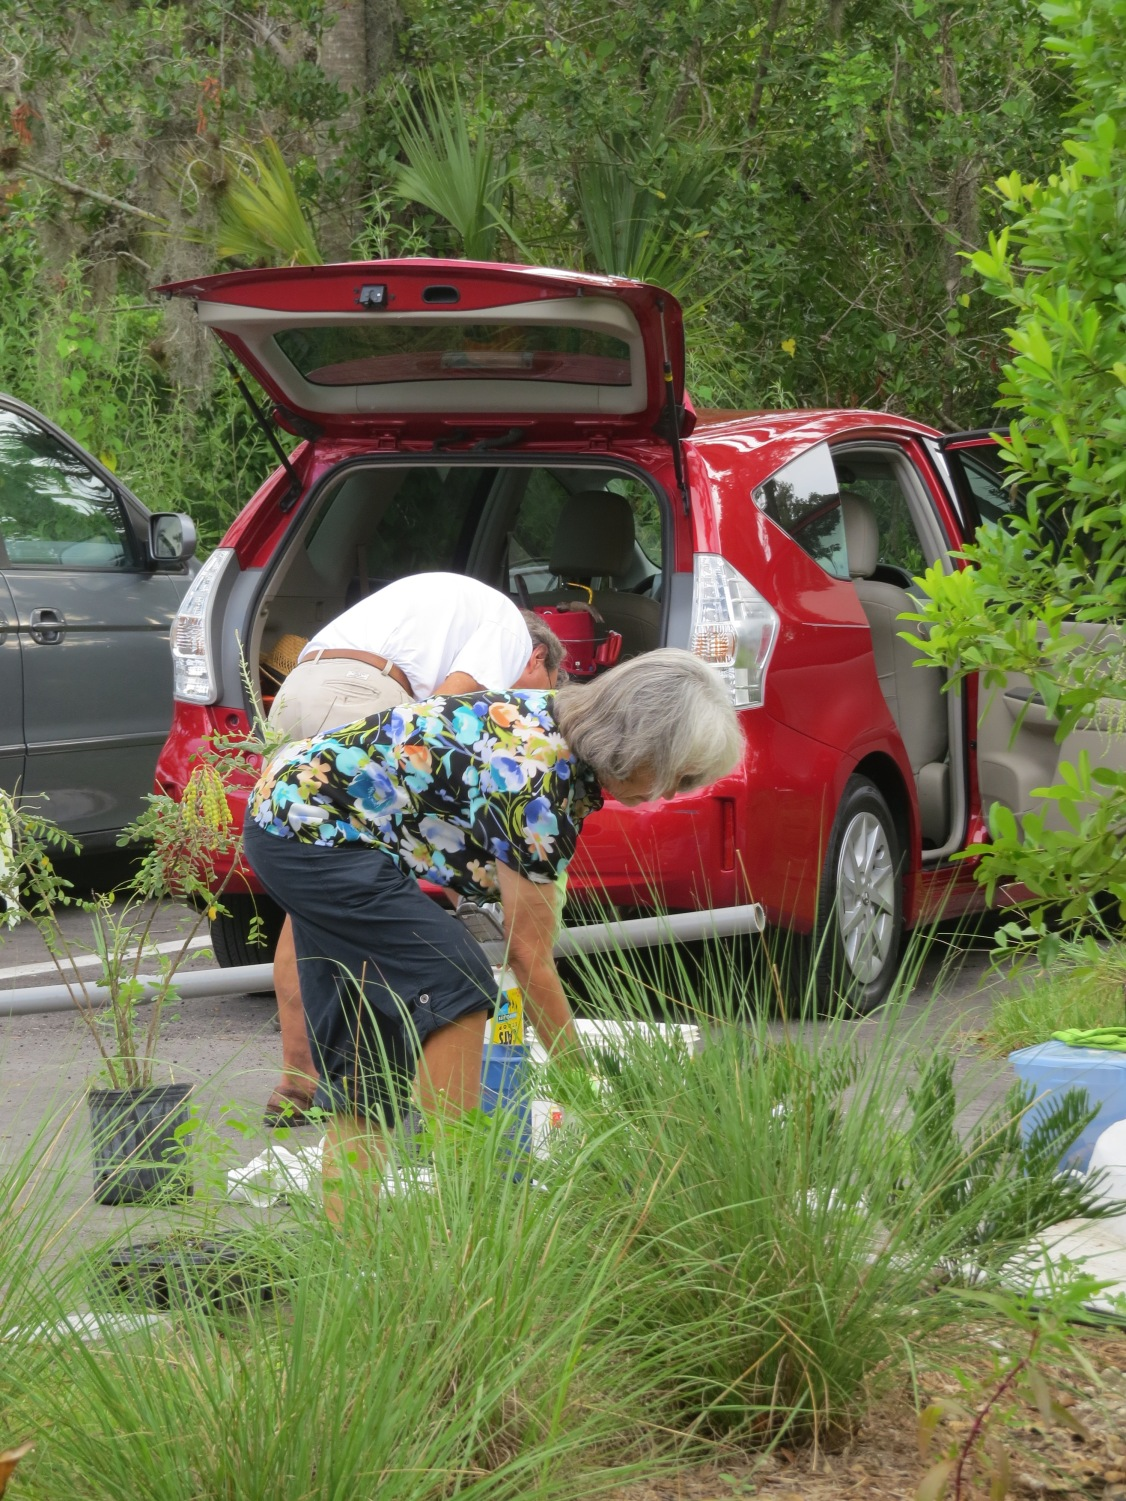 !ellie klebonis on 6-13-15 @ AH planting day copy